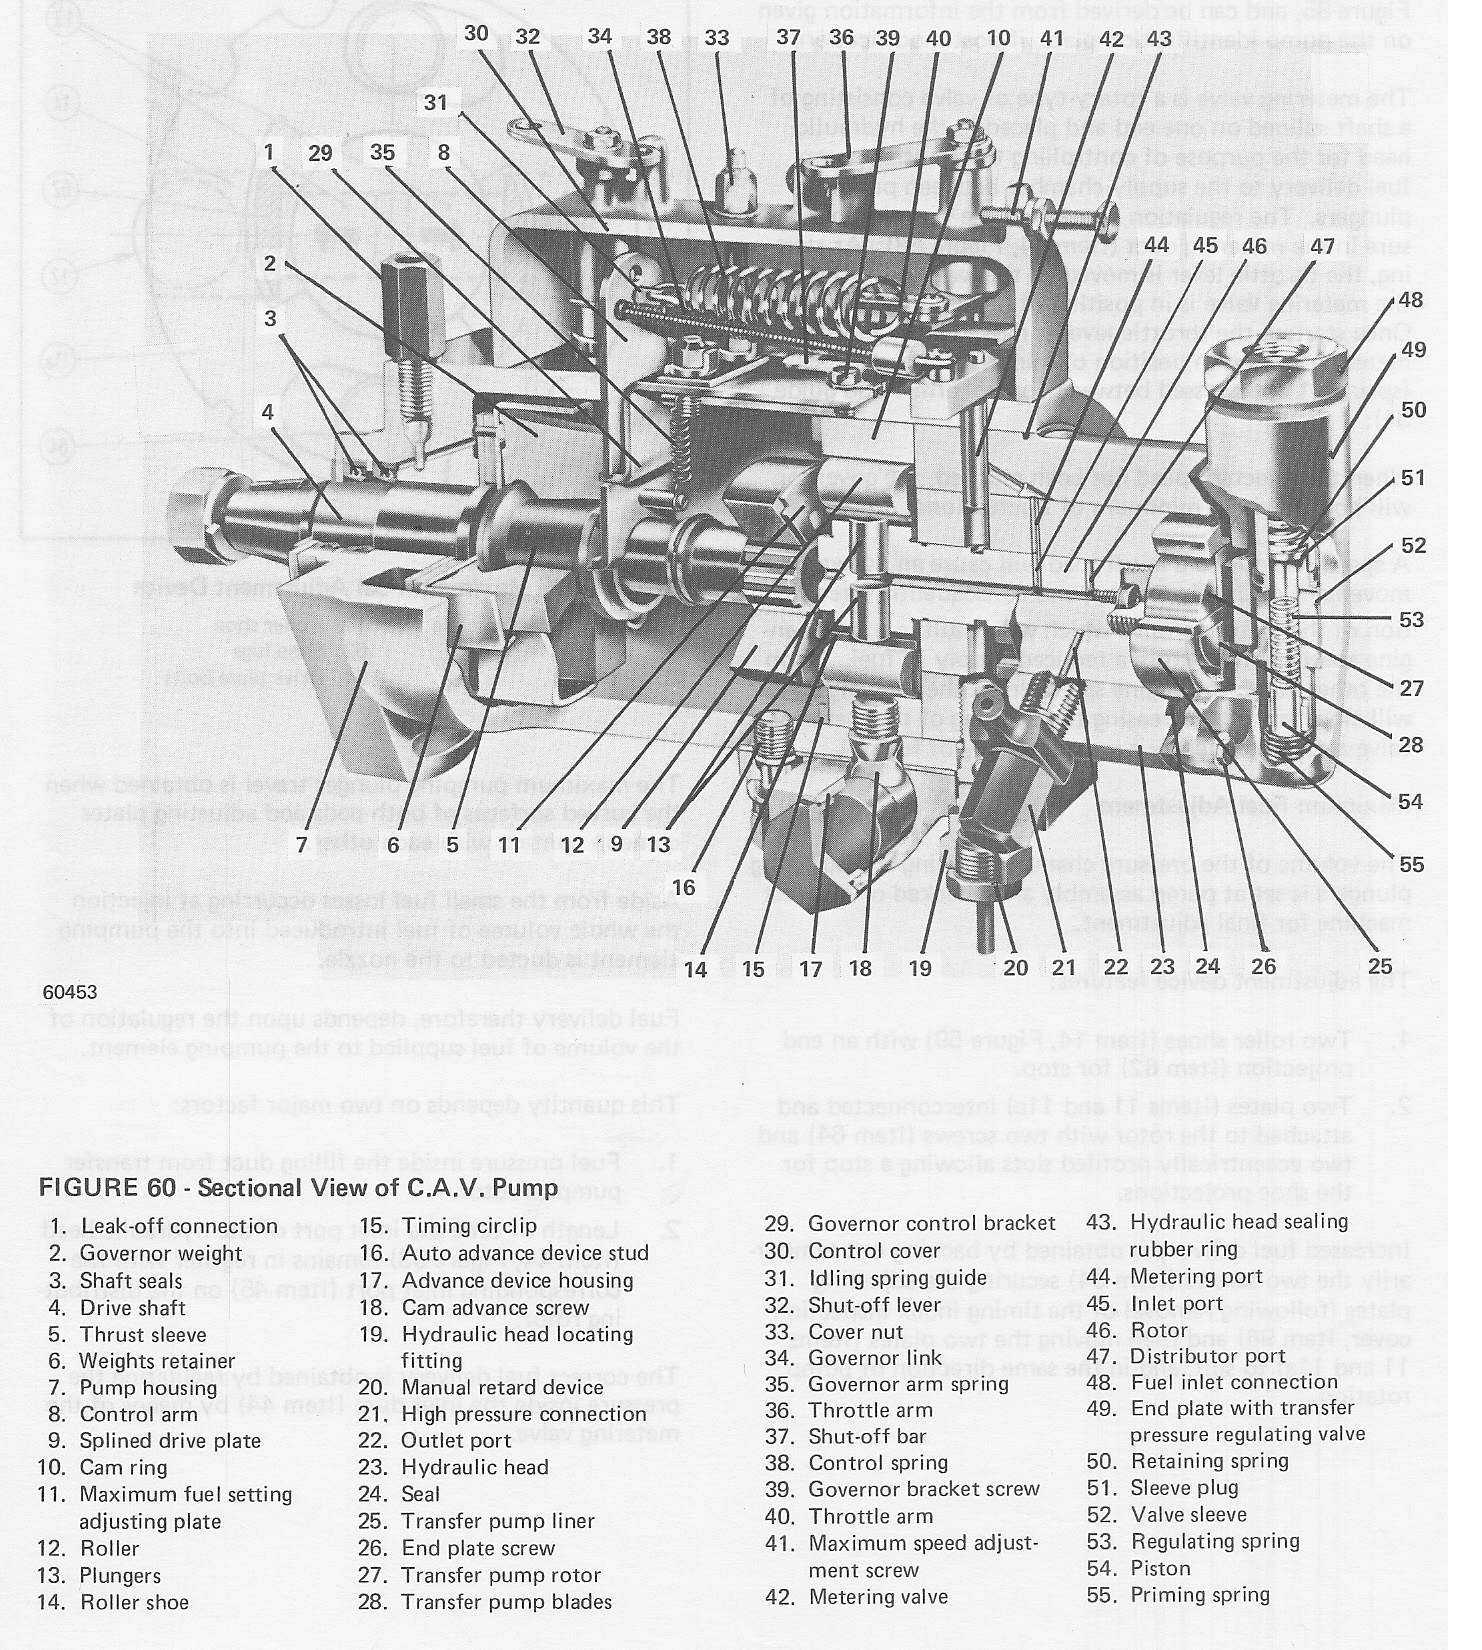 185 allis chalmers injector pump diagram allis chalmers magneto wiring diagram #7